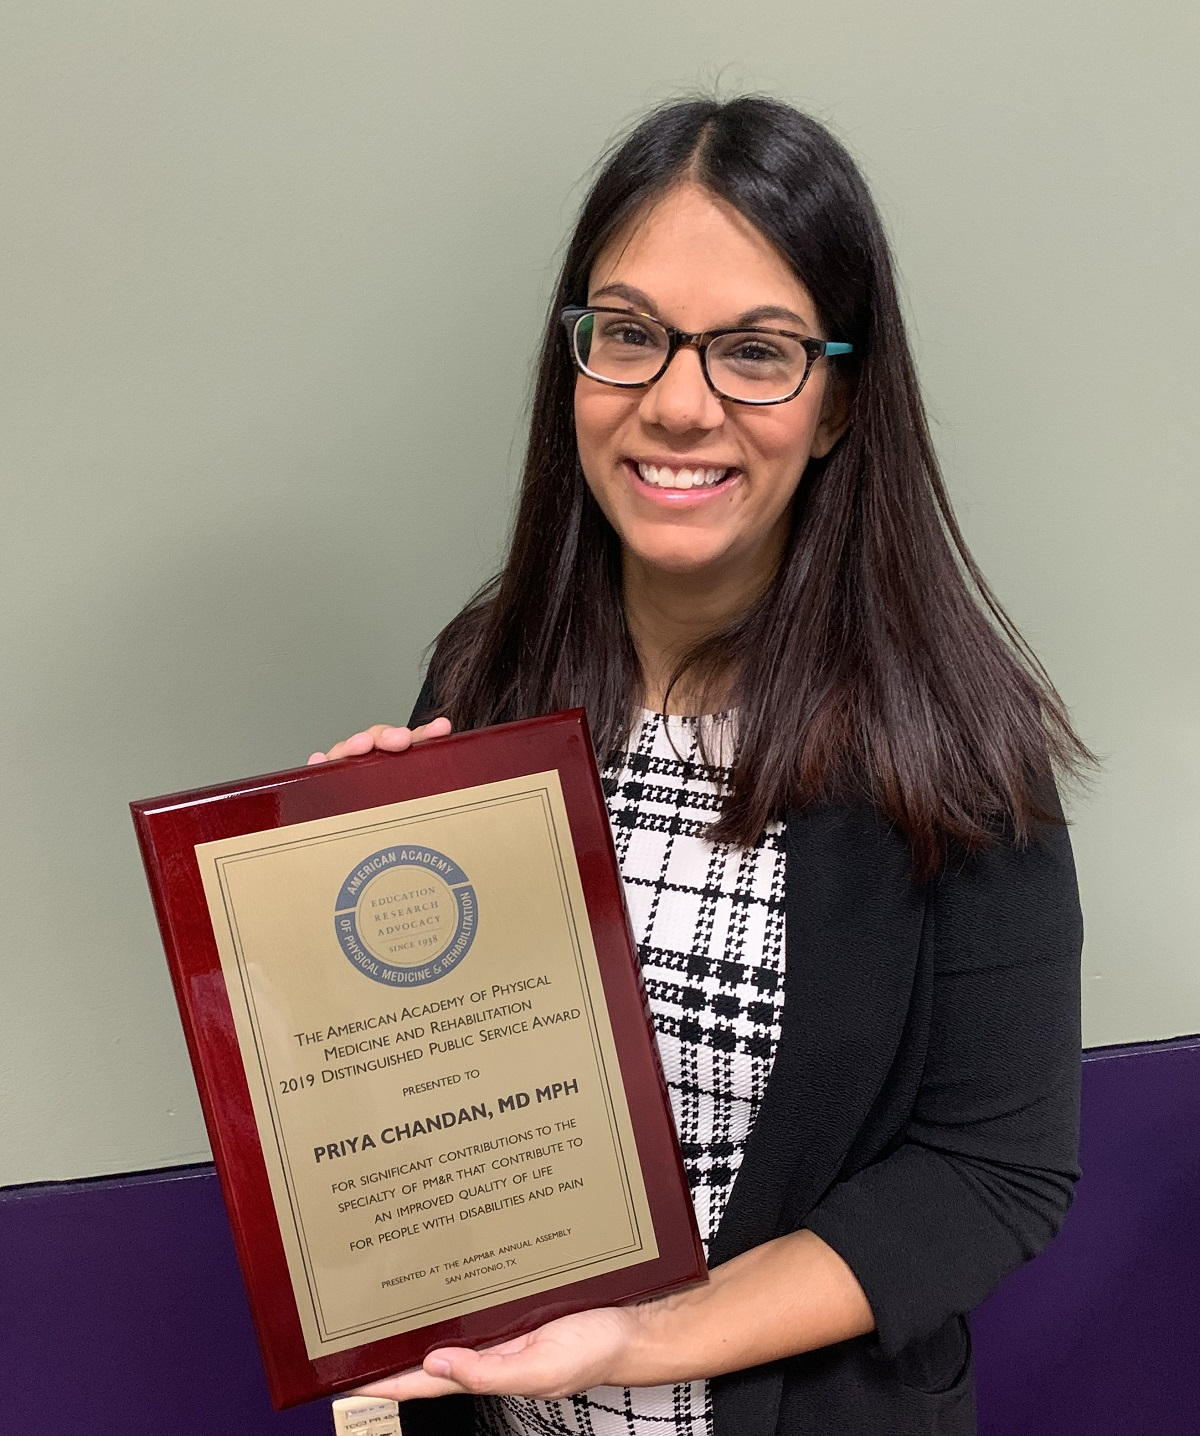 Priya Chandan, M.D., M.P.H., recognized by AAPM&R for work in inclusive health for people with intellectual disabilities